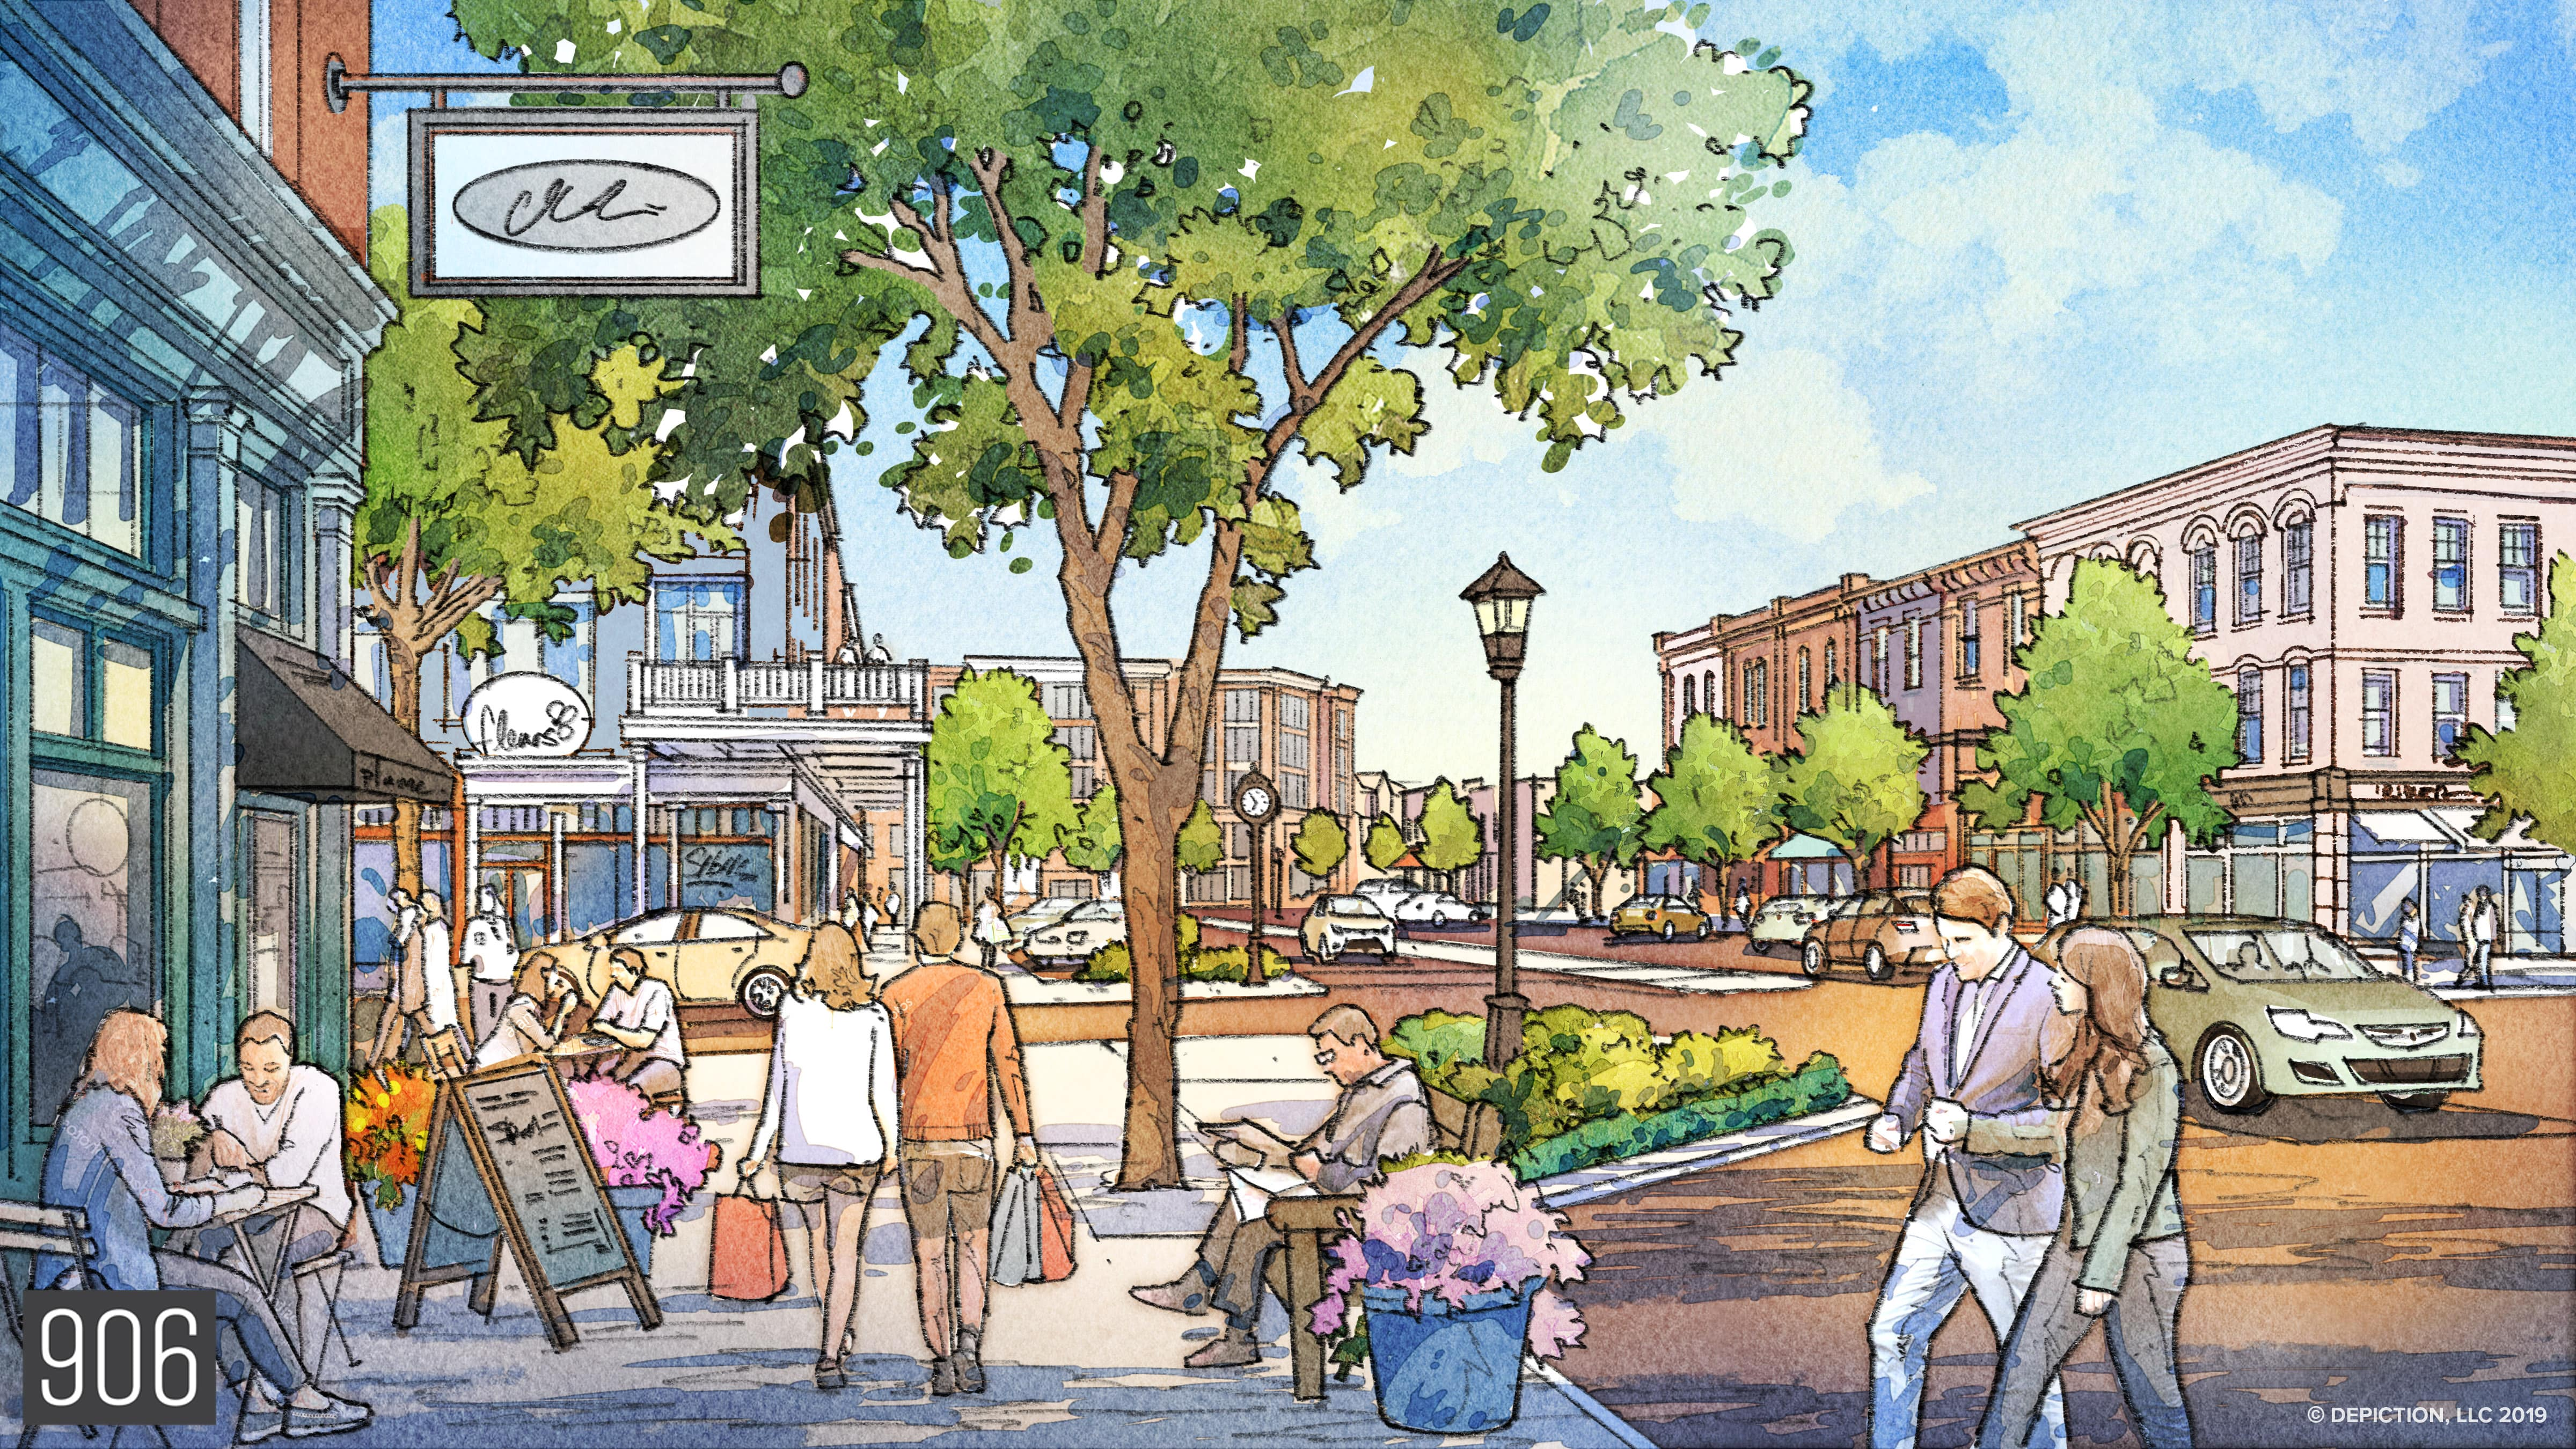 Spring Hill downtown development projected to generate $100 million in revenue for city over 20 years